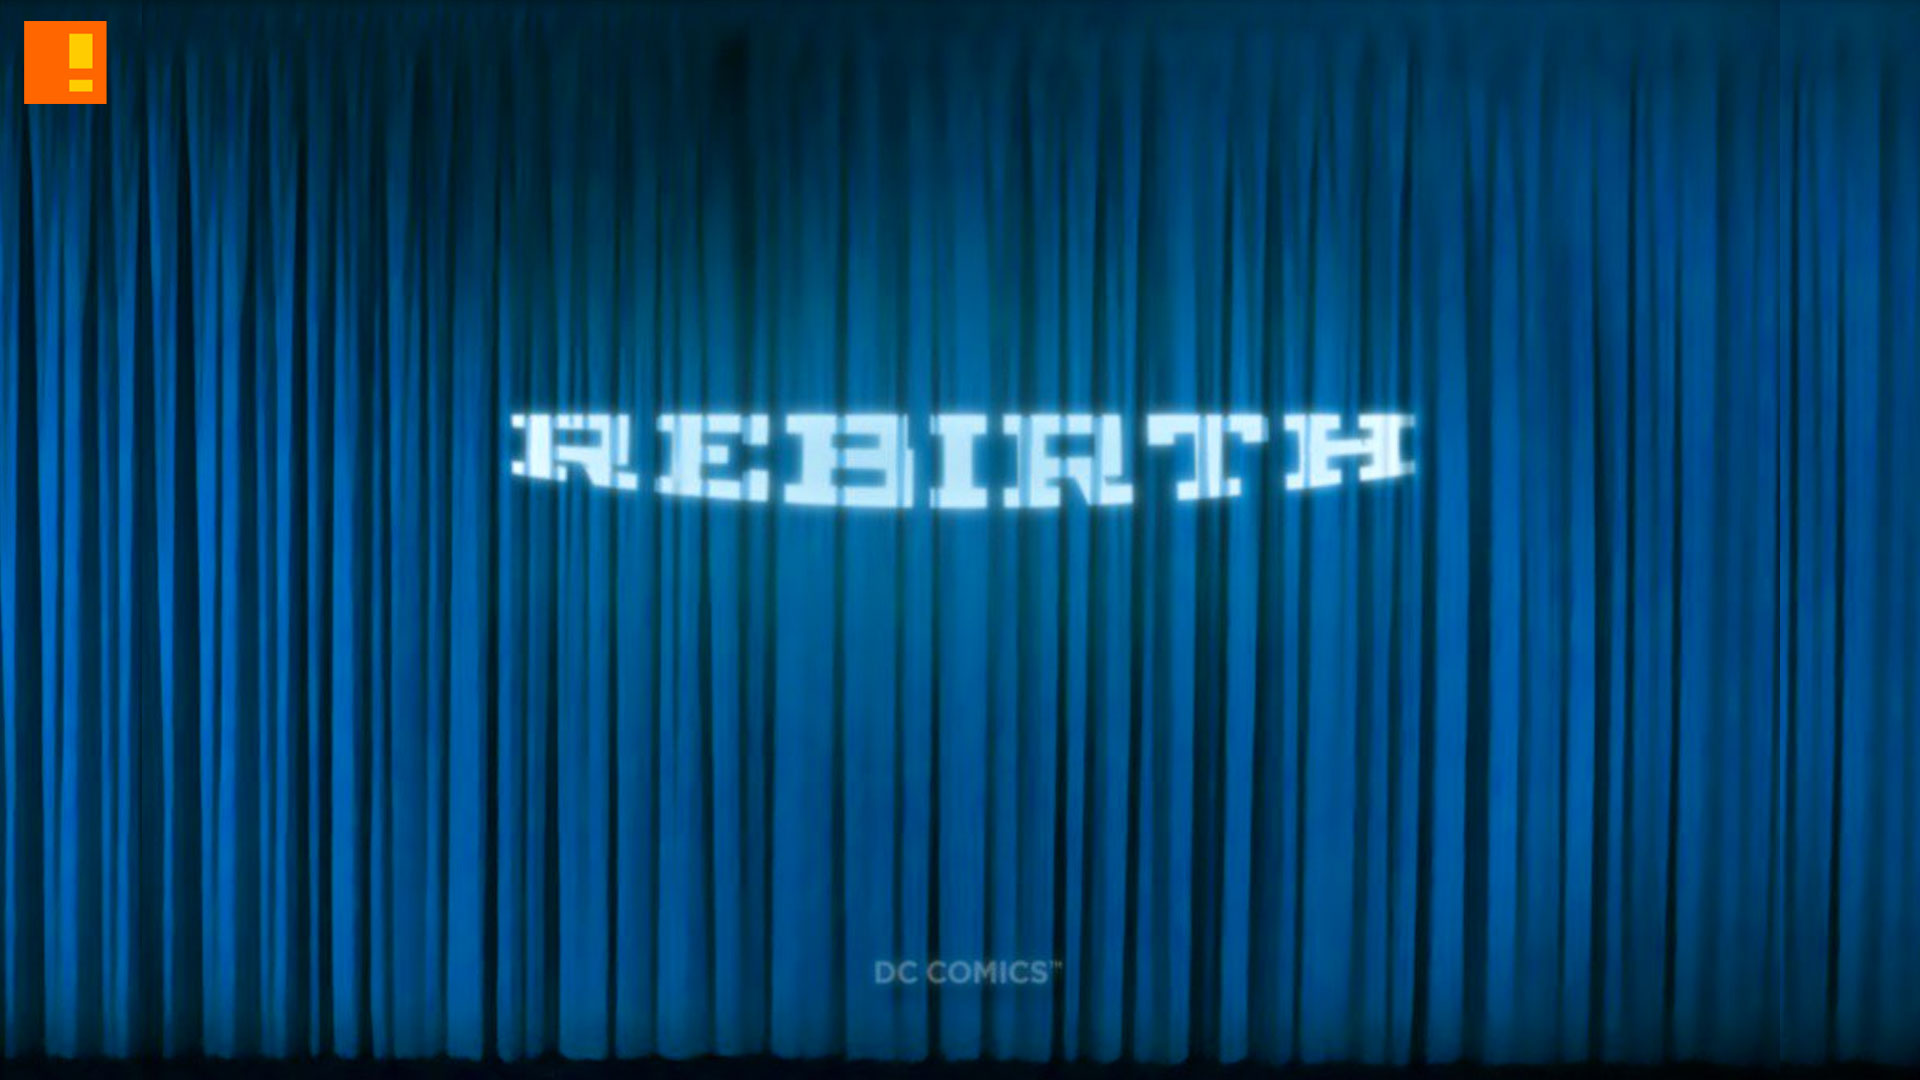 rebirth. dc comics. the action pixel. entertainment on tap. the action pixel. @theactionpixel